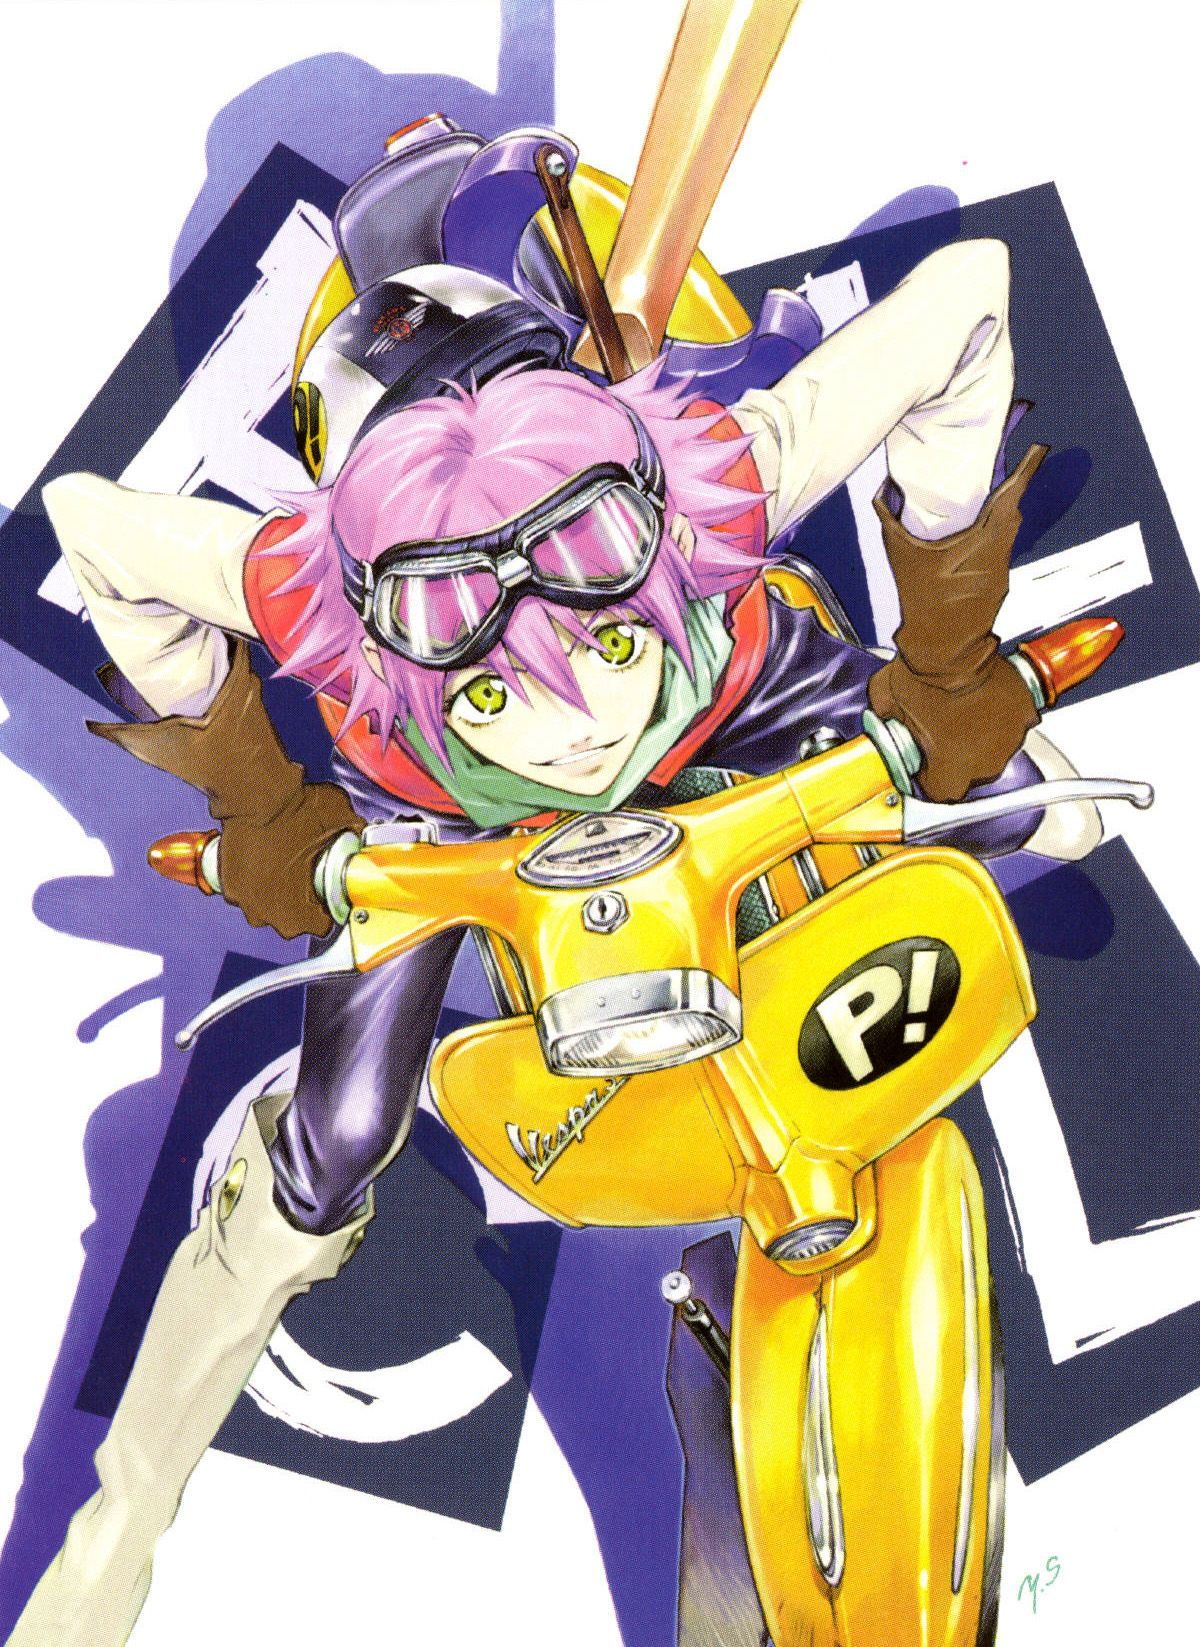 Pin by Lana Scan on Anime Anime, Flcl, Flcl haruko